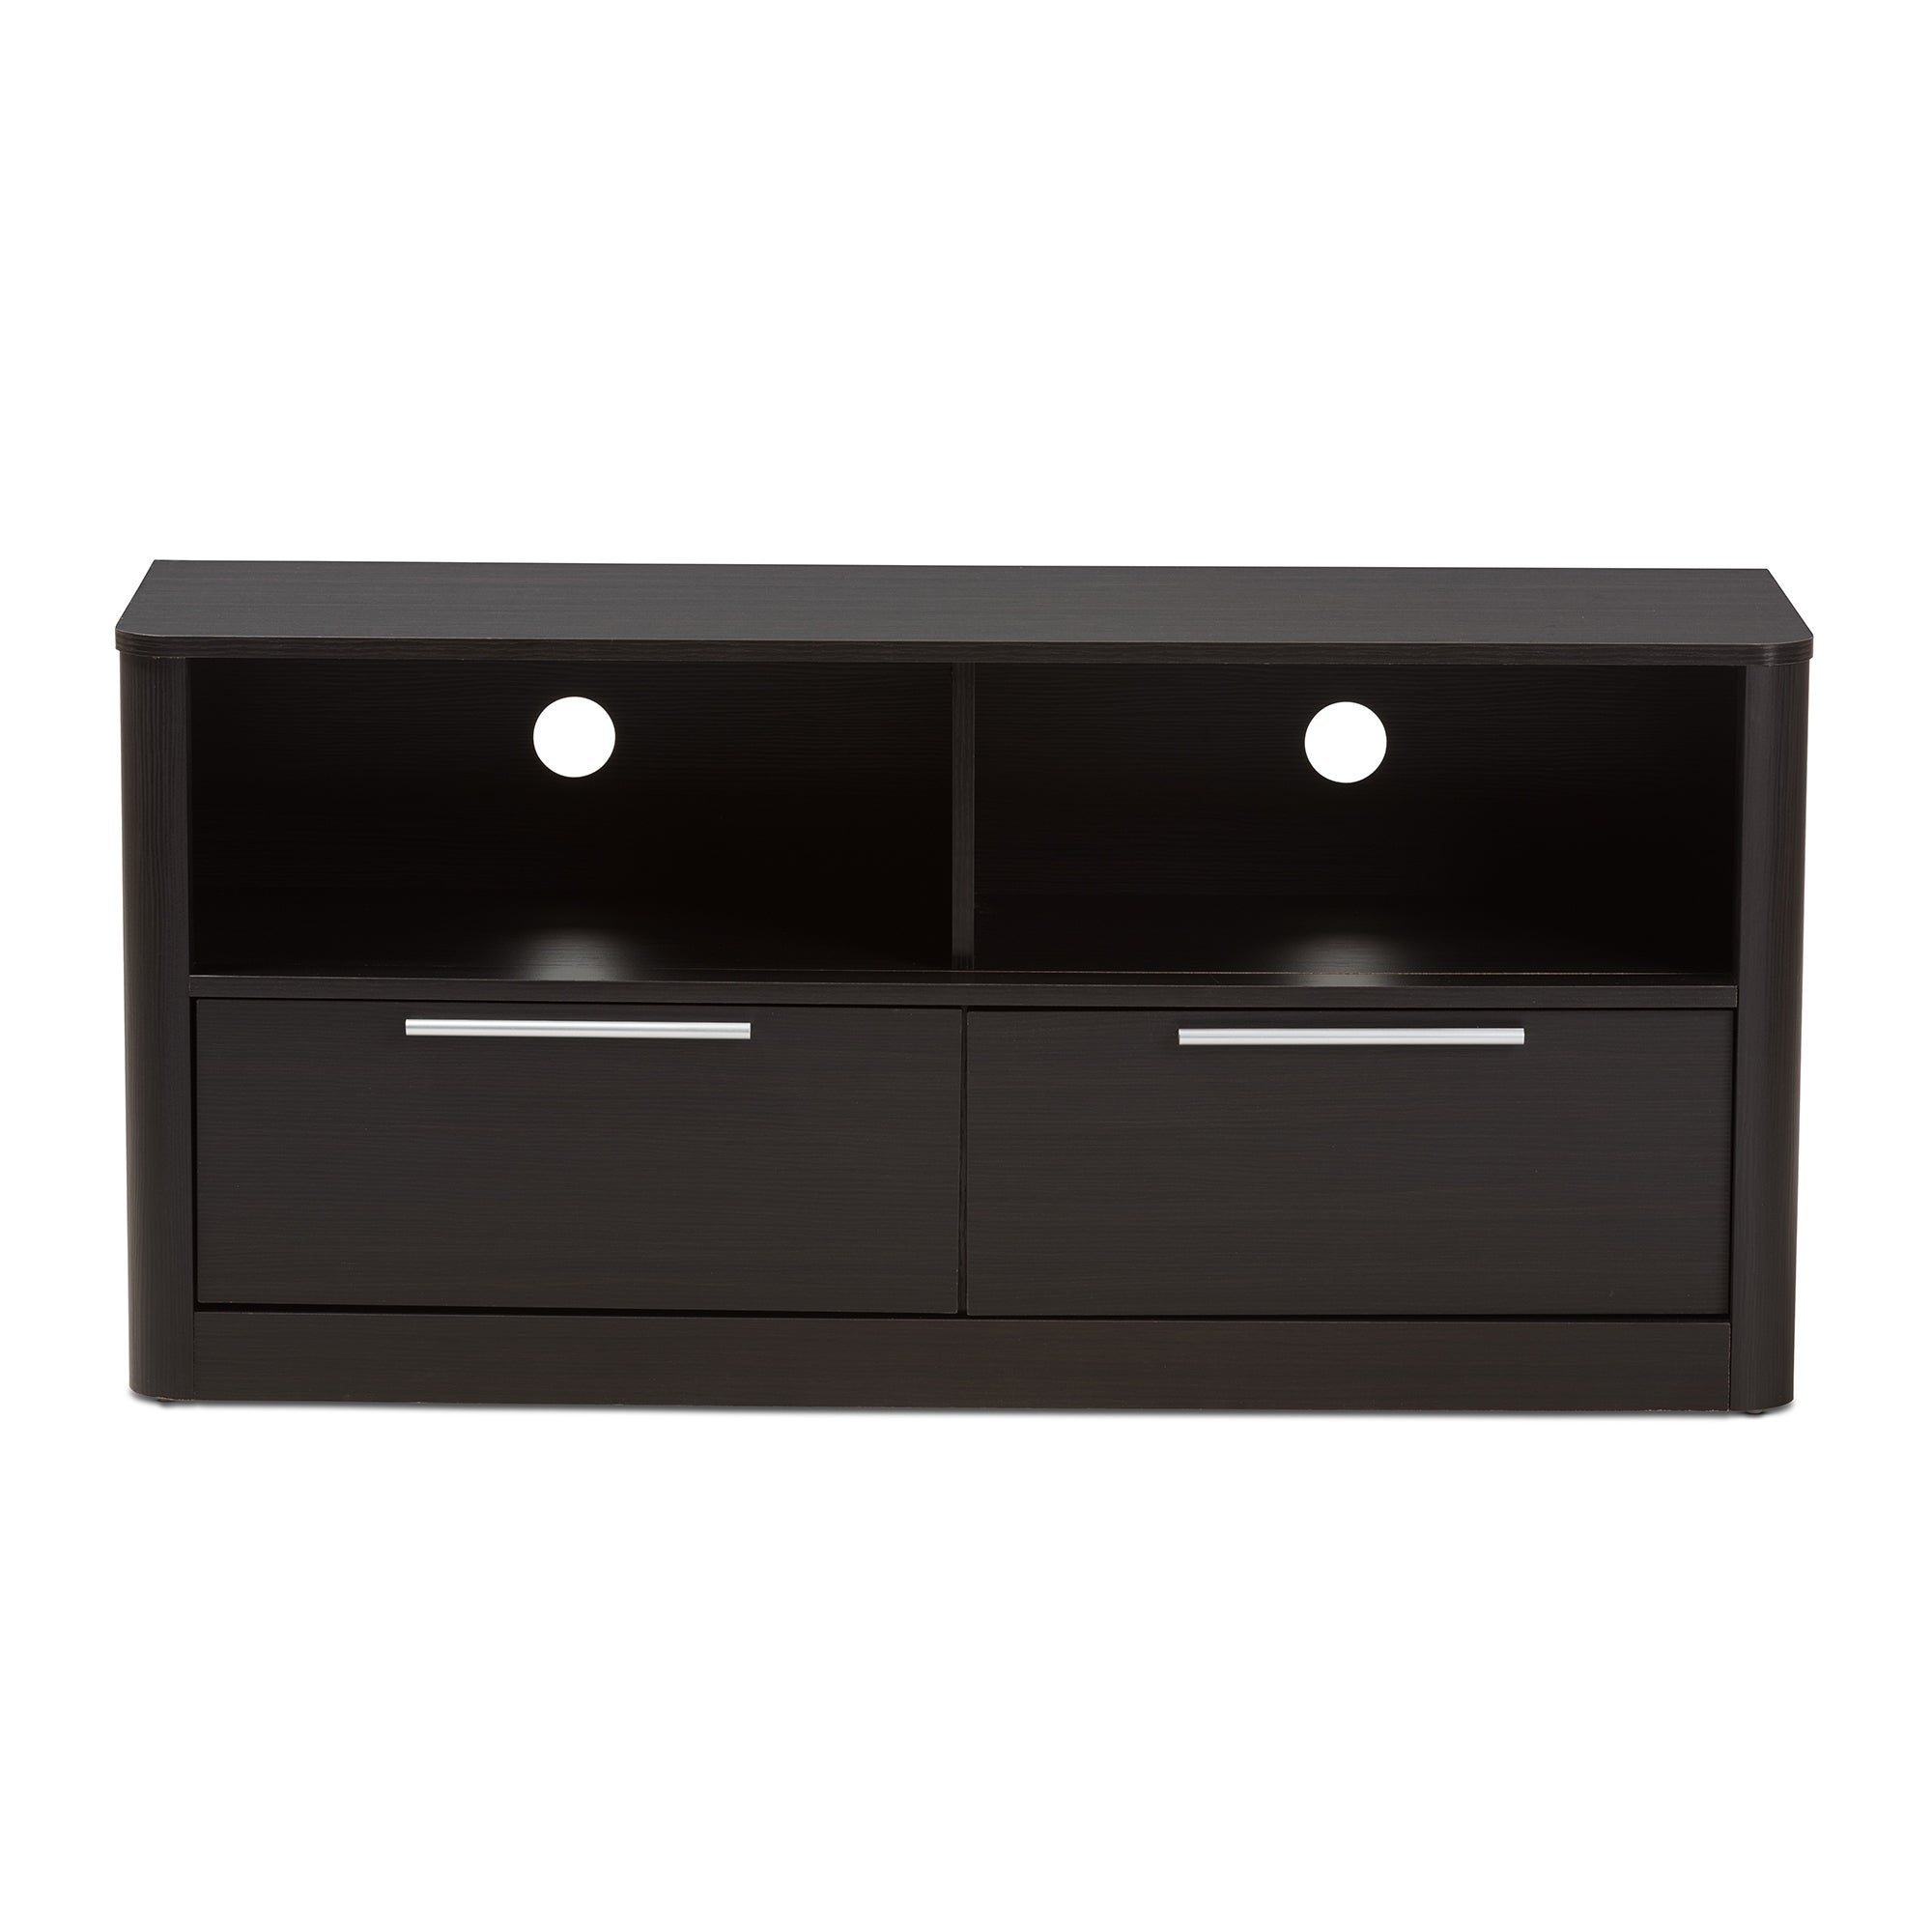 Contemporary-TV-Stand-by-Baxton-Studio thumbnail 10